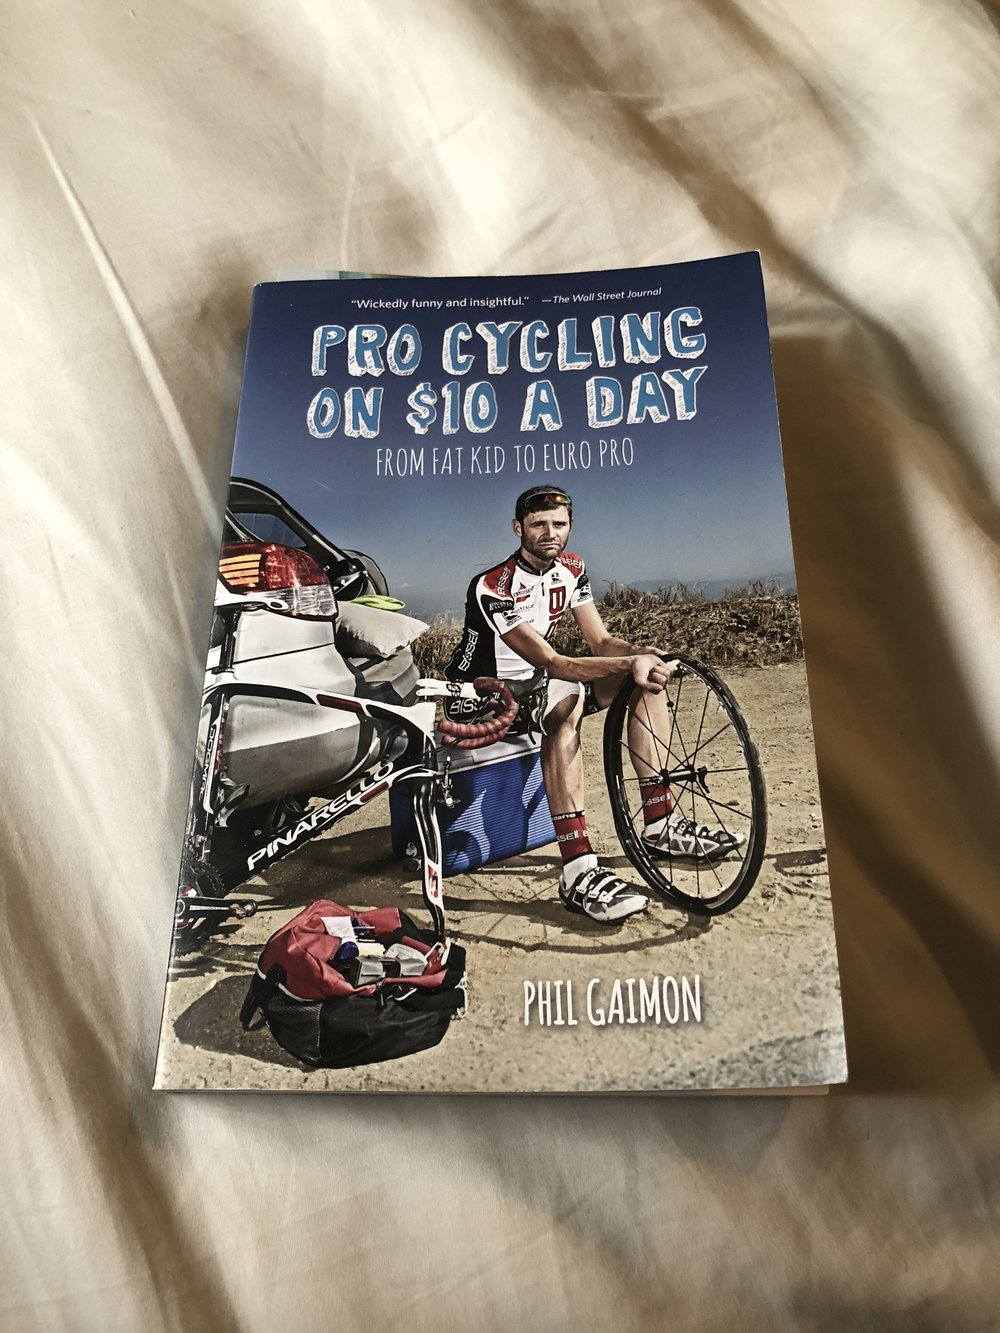 Pro Cycling on $10 a Day Phil Gaimon